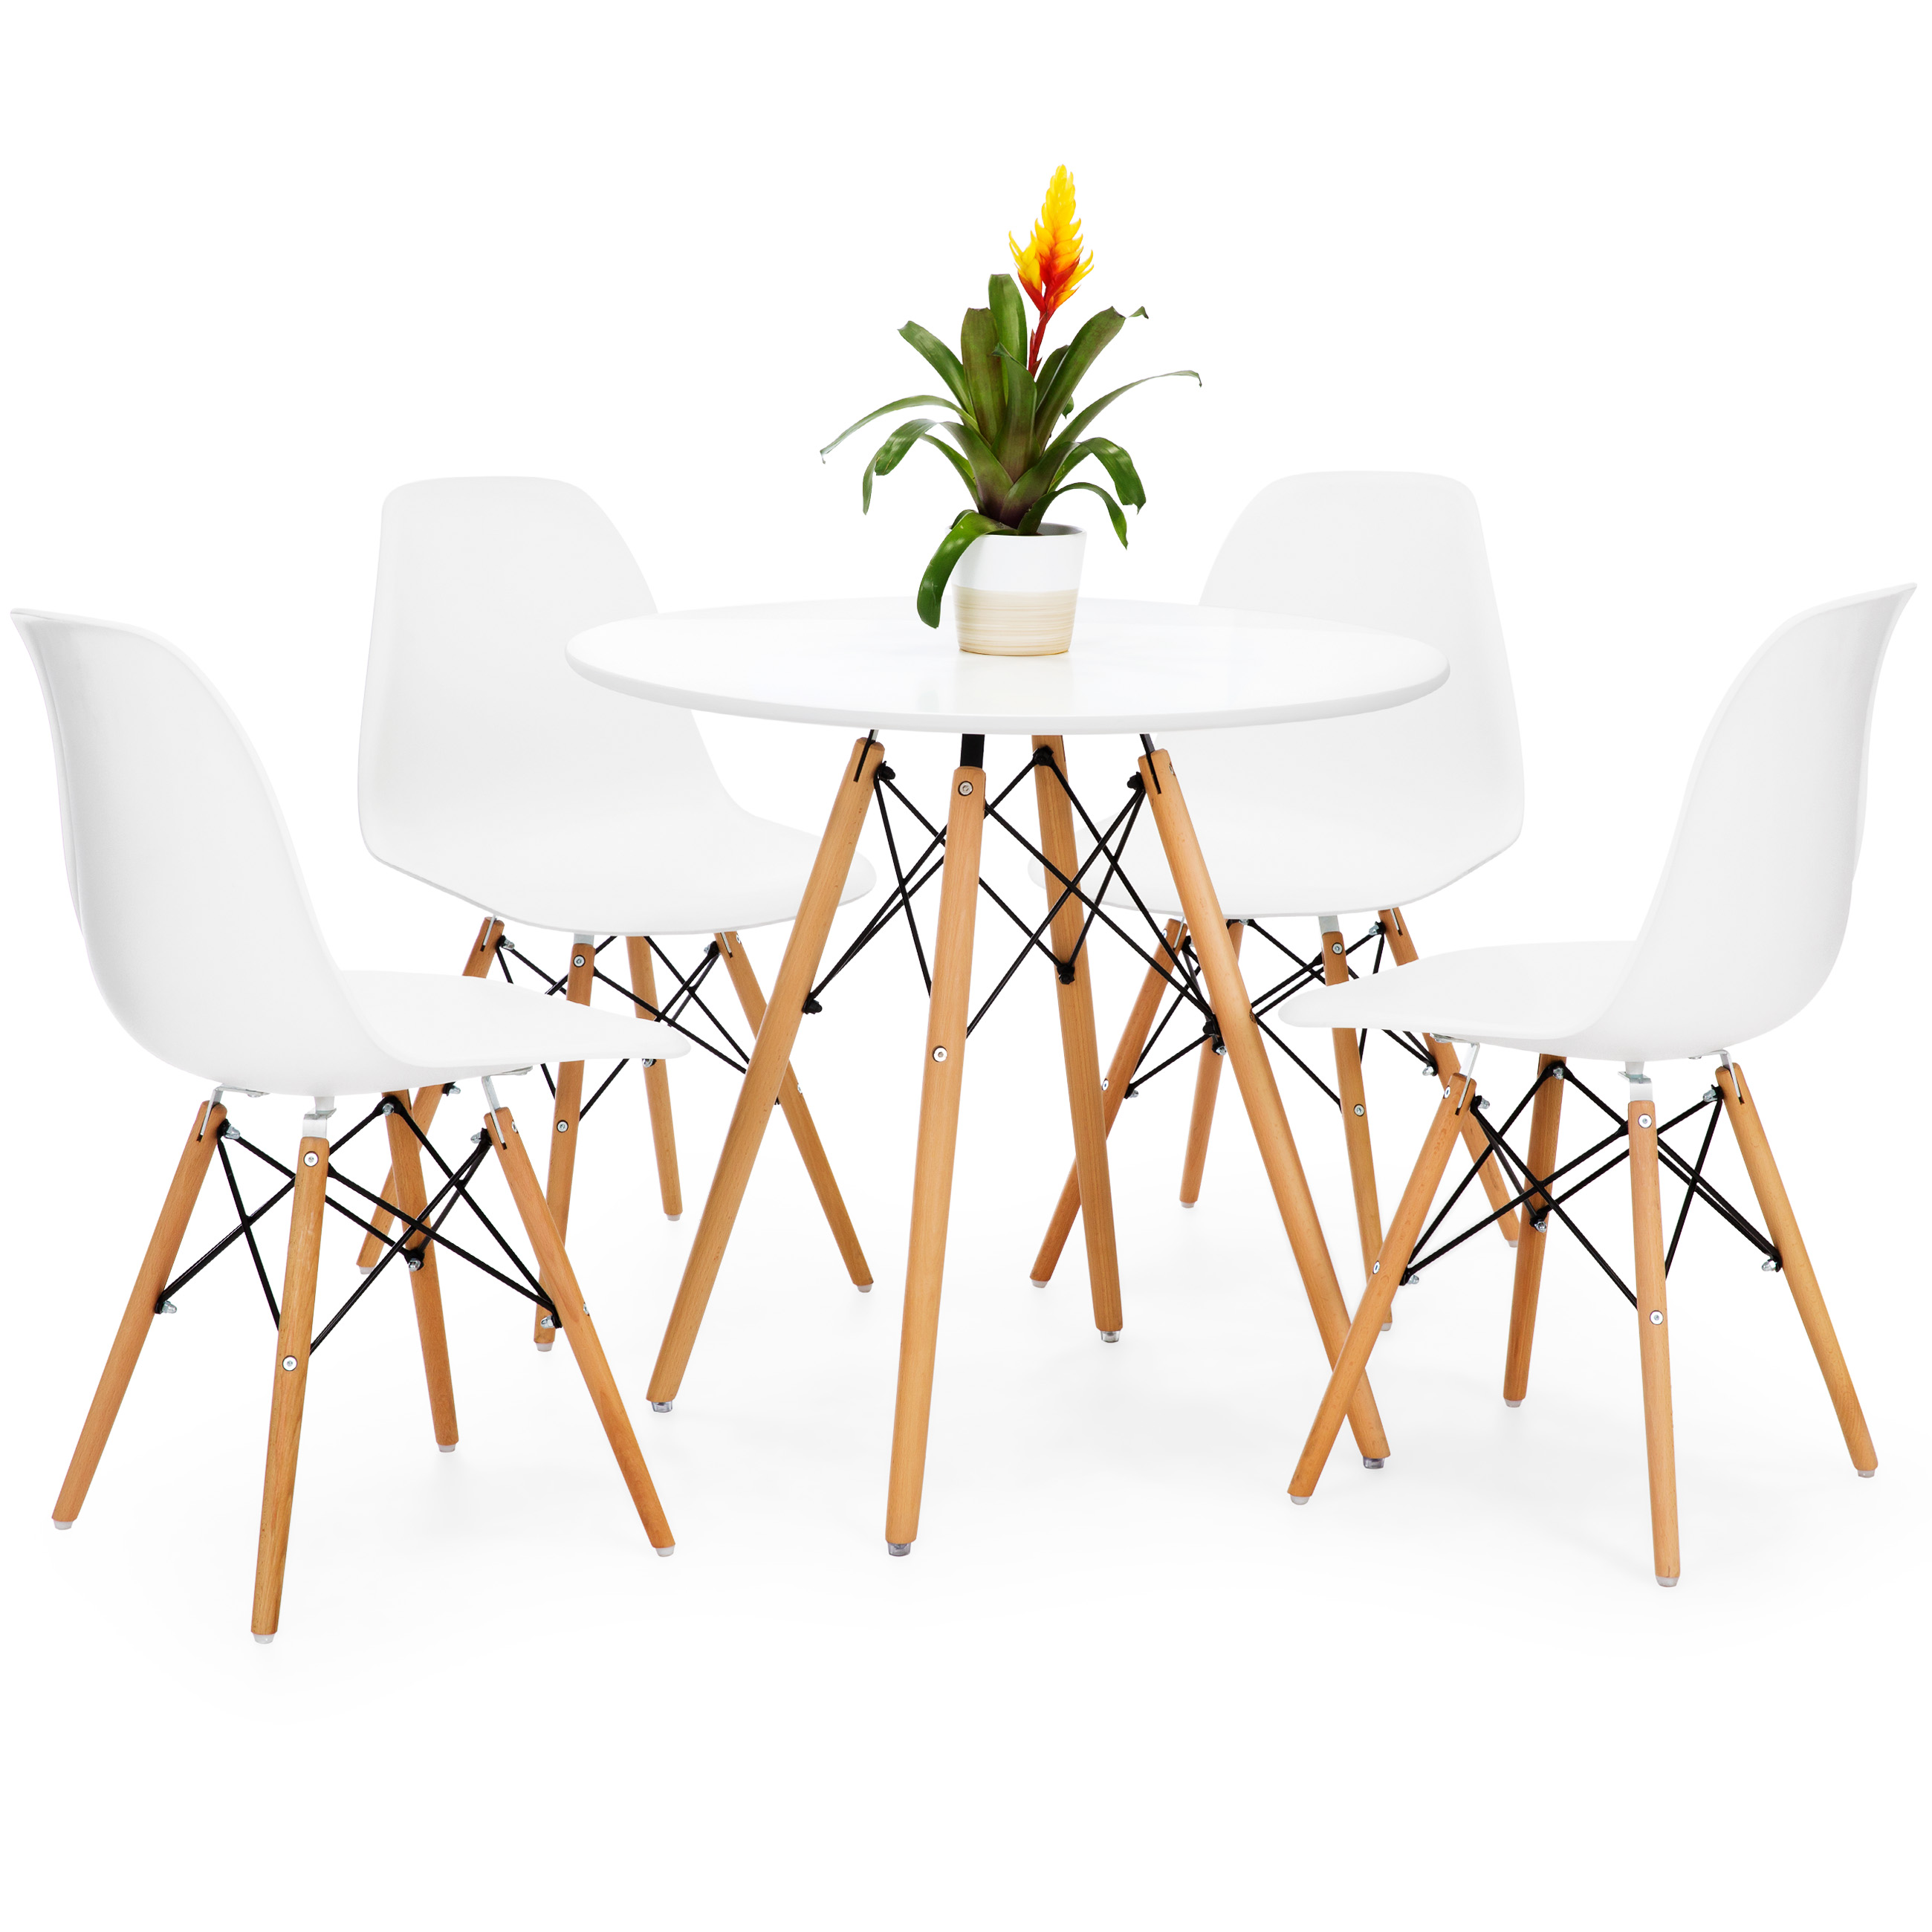 Best Choice Products Mid Century Modern Eames Style Round Dining Table w  Wood Legs and White Tabletop by Best Choice Products